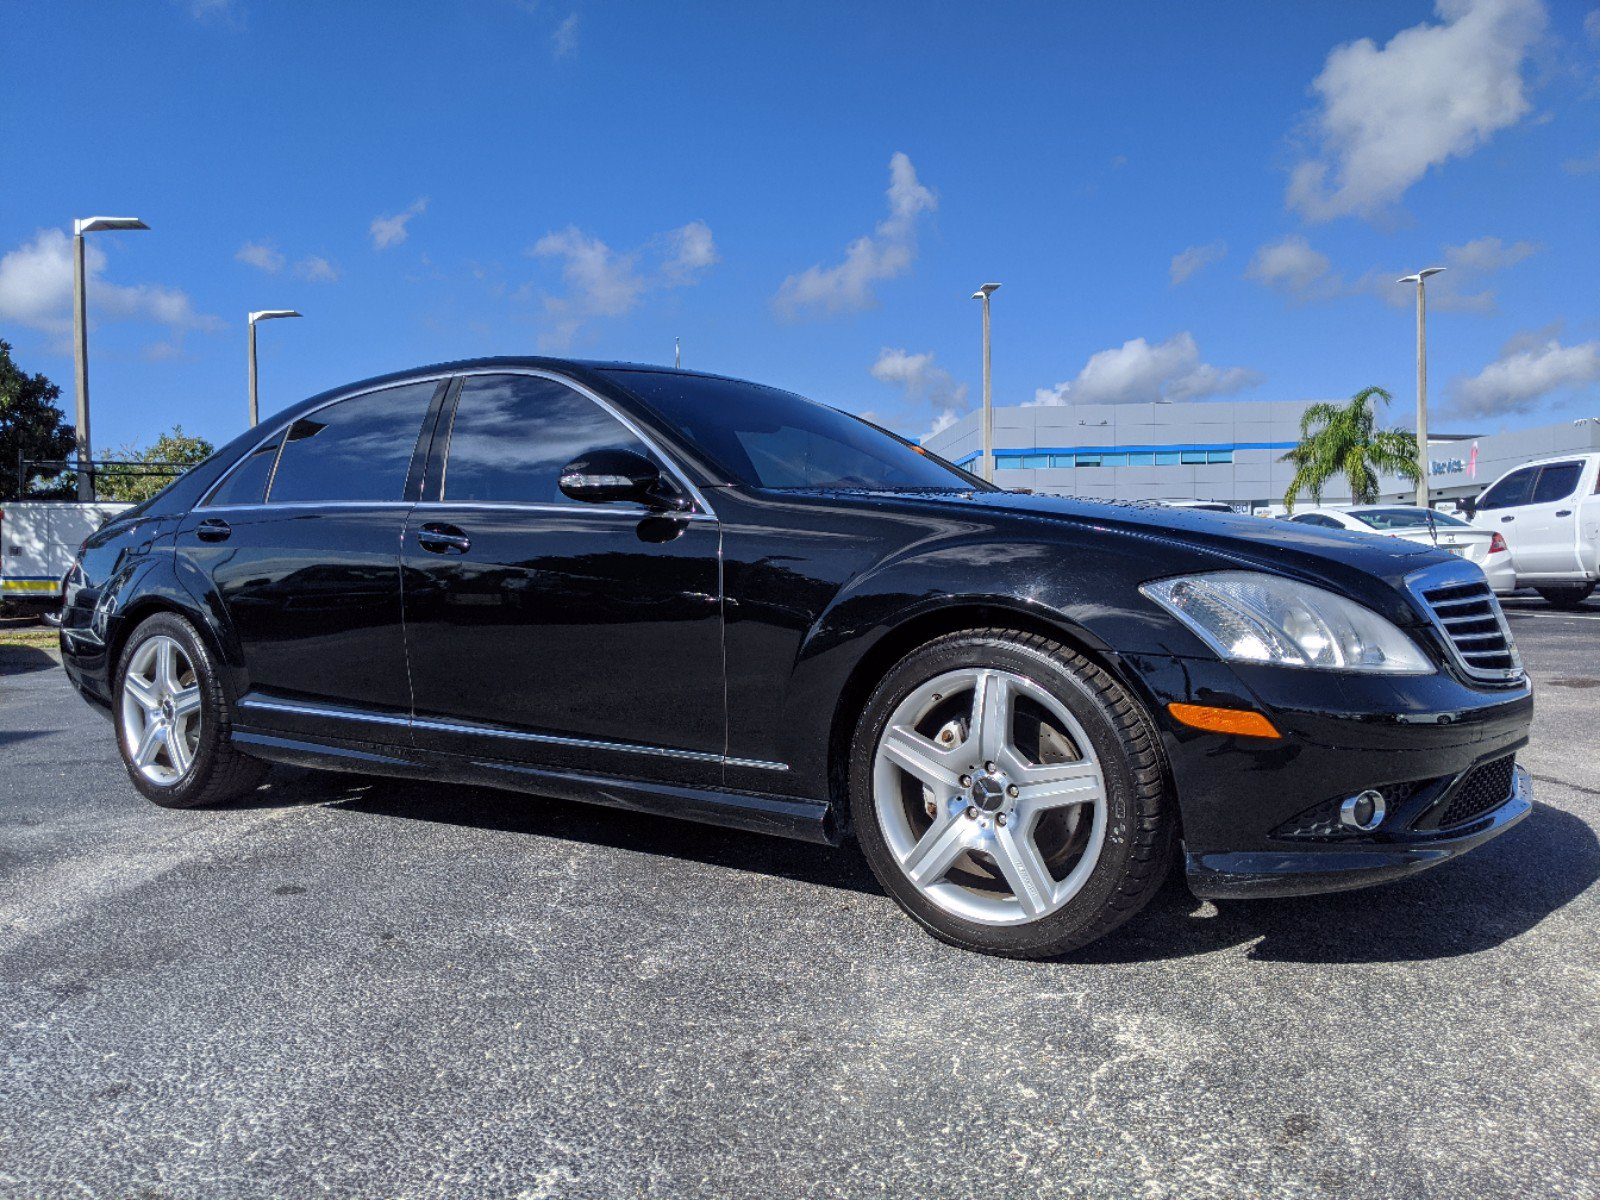 Pre-Owned 2007 mercedes-benz S-Class Sedan 4 Dr.